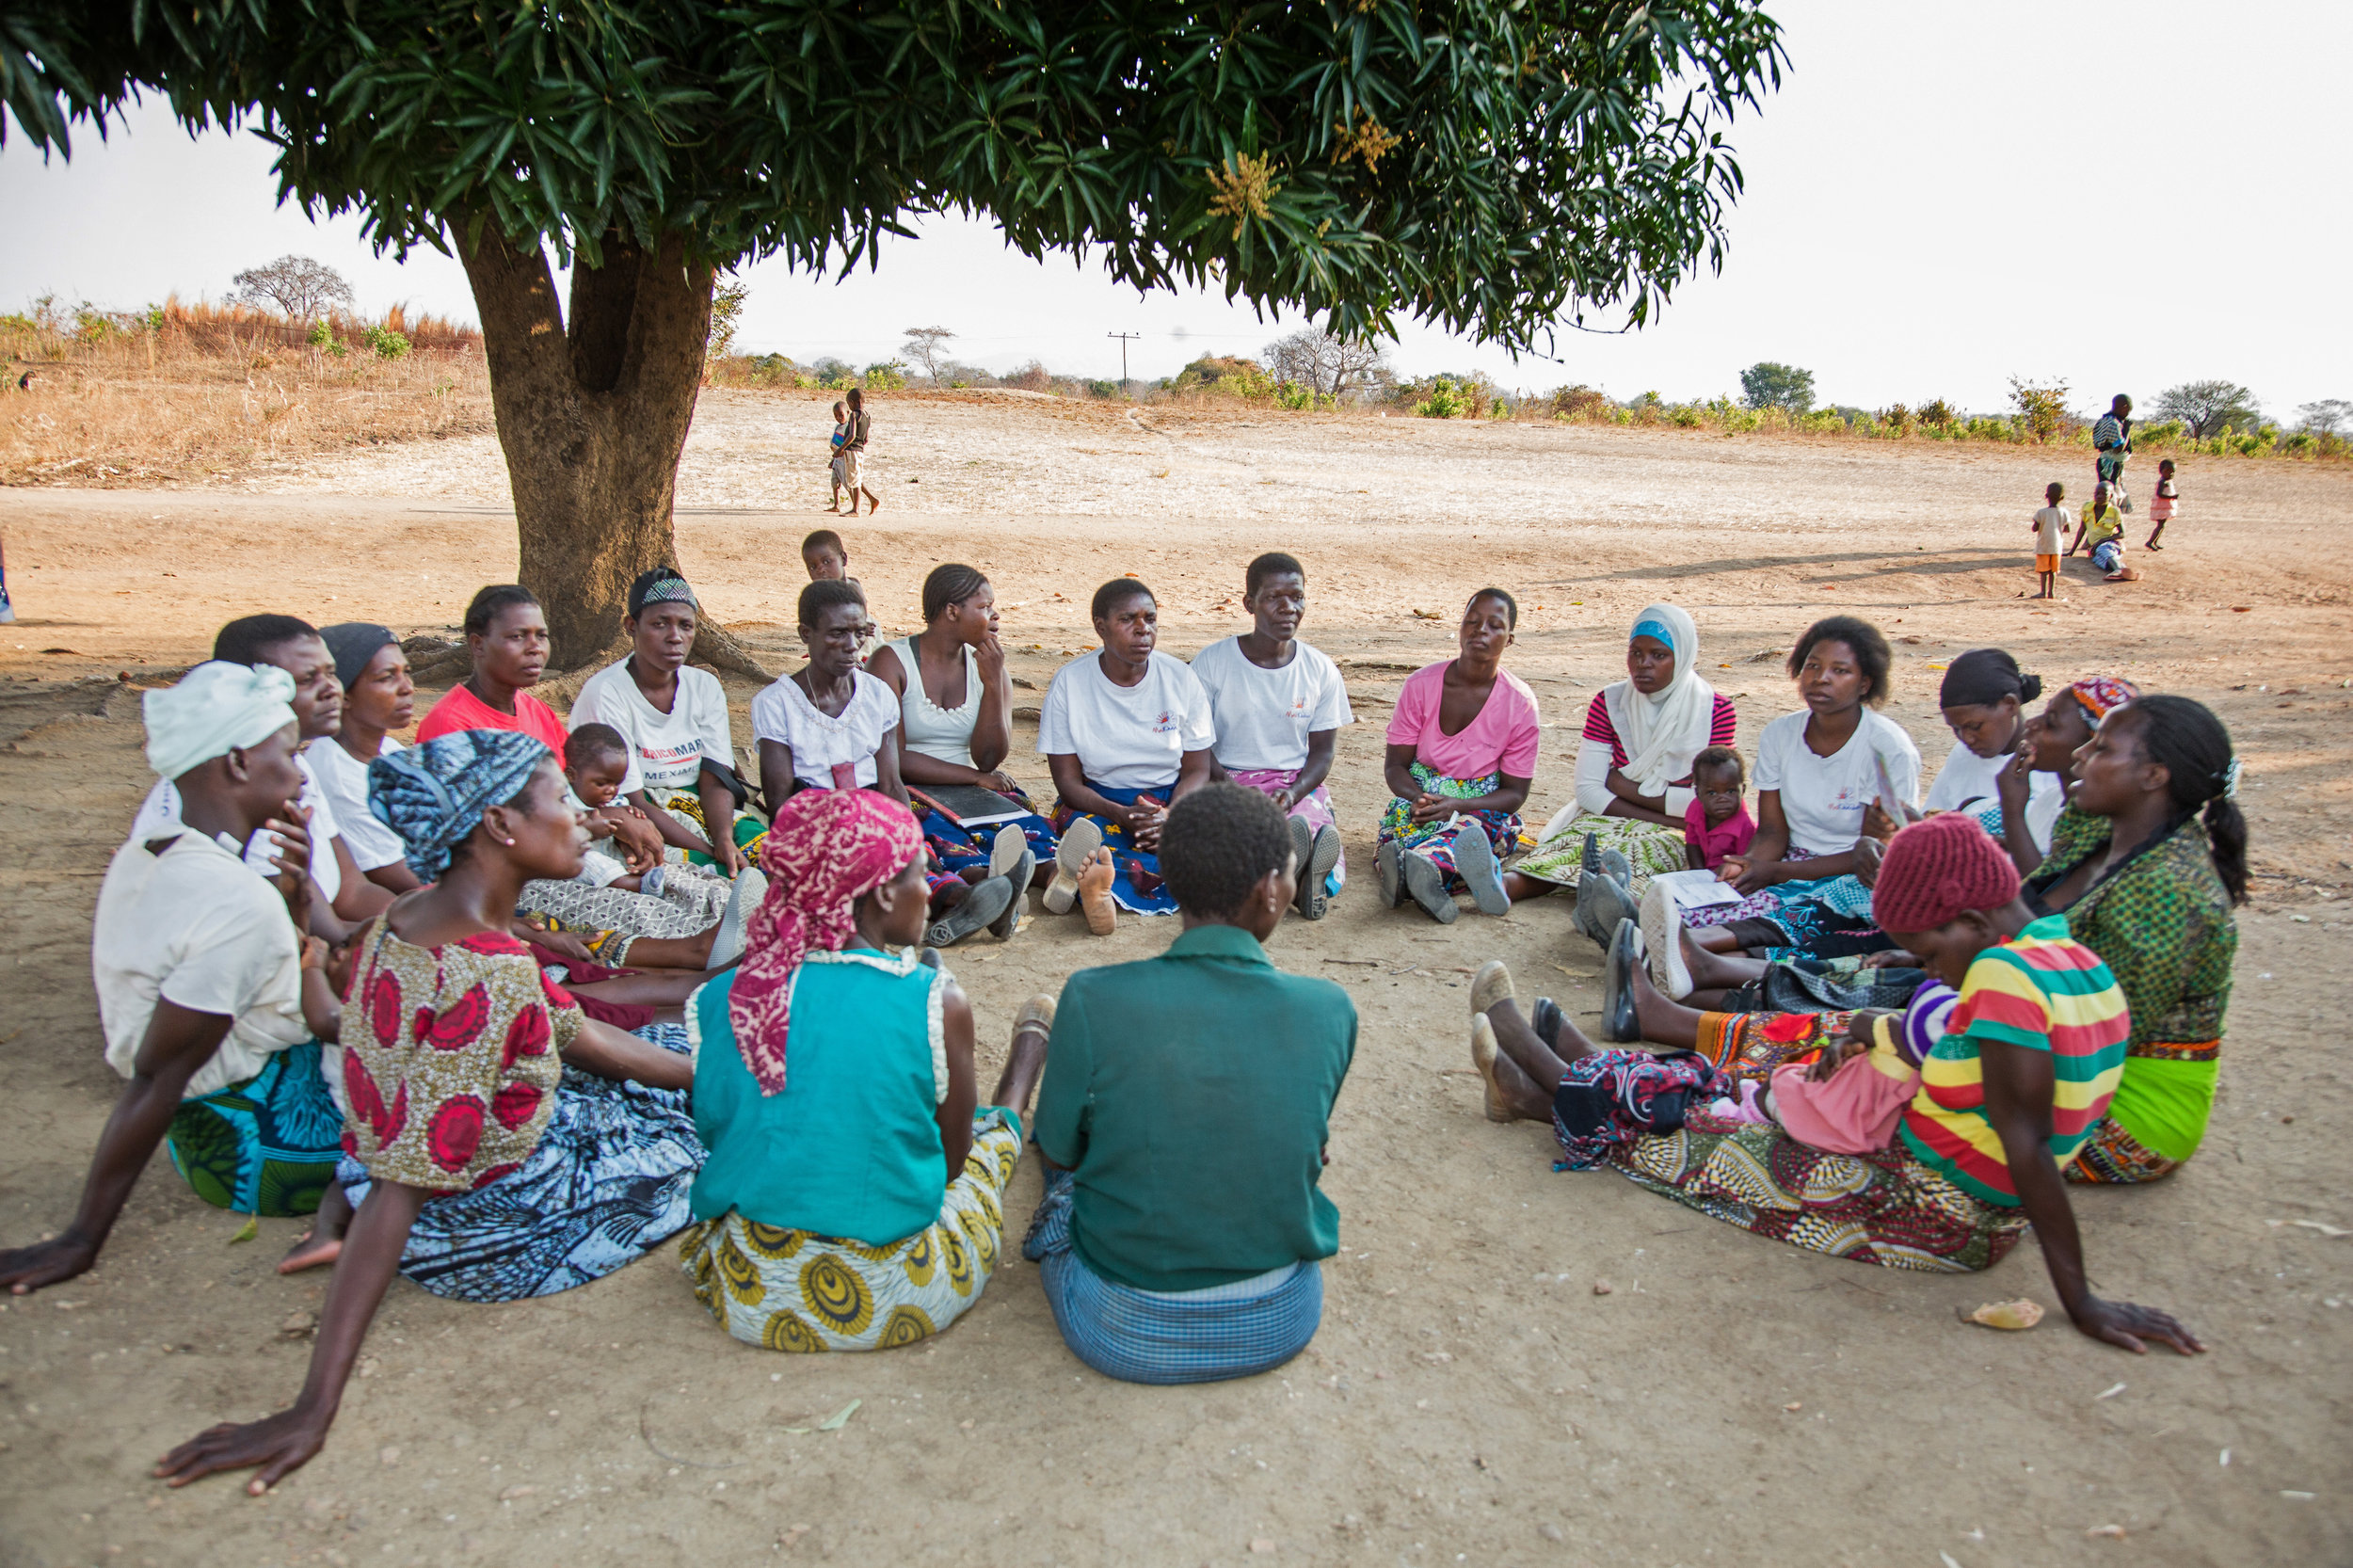 A women's health group meets in Kutambala village, Malawi (Photo: Corrie Wingate)